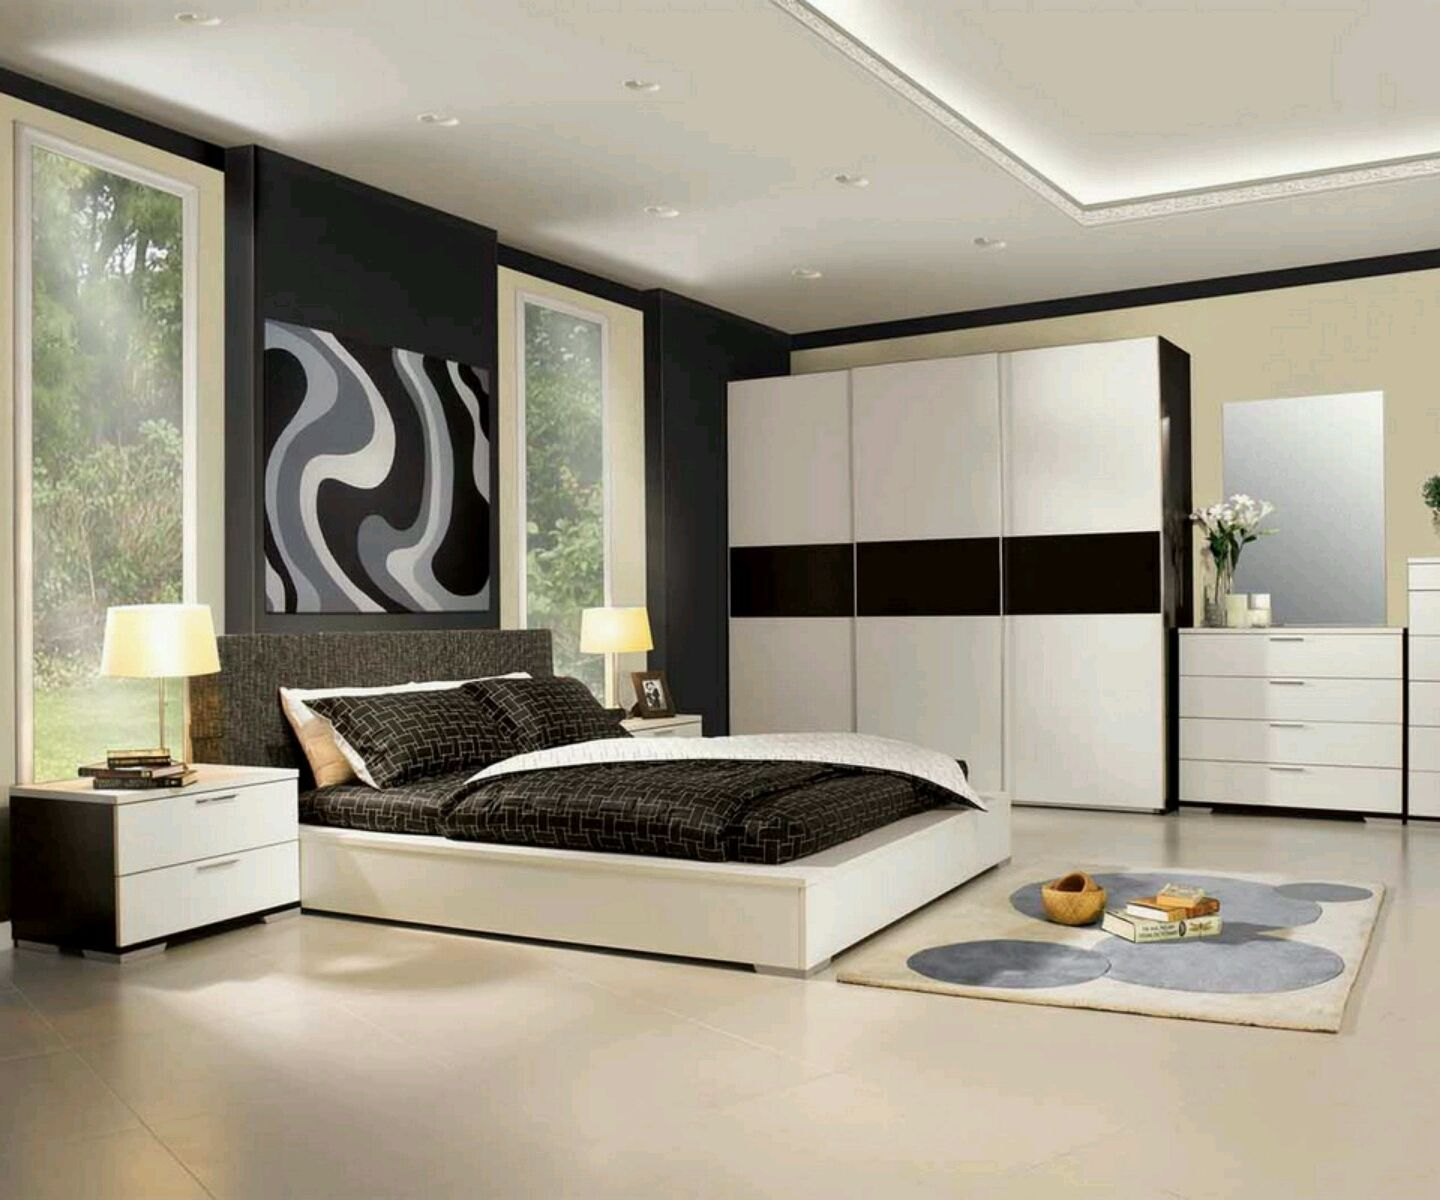 Bedroom Furniture Designs modern bedroom furniture design for more pictures and design ideas, please  visit NLLVIJQ